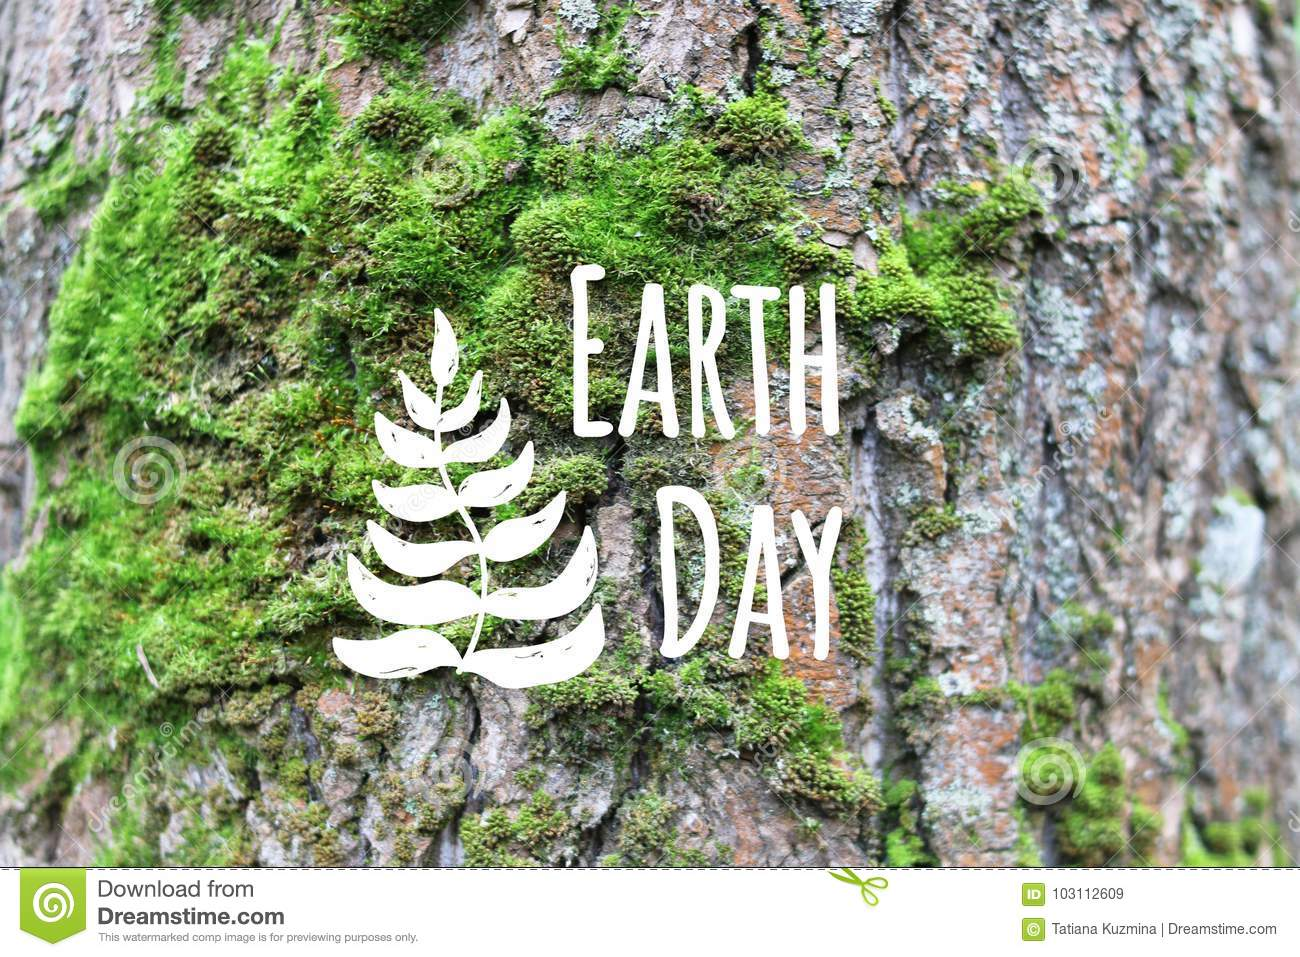 Earth day card decorated hand drawn leave on the green moss tree bark background